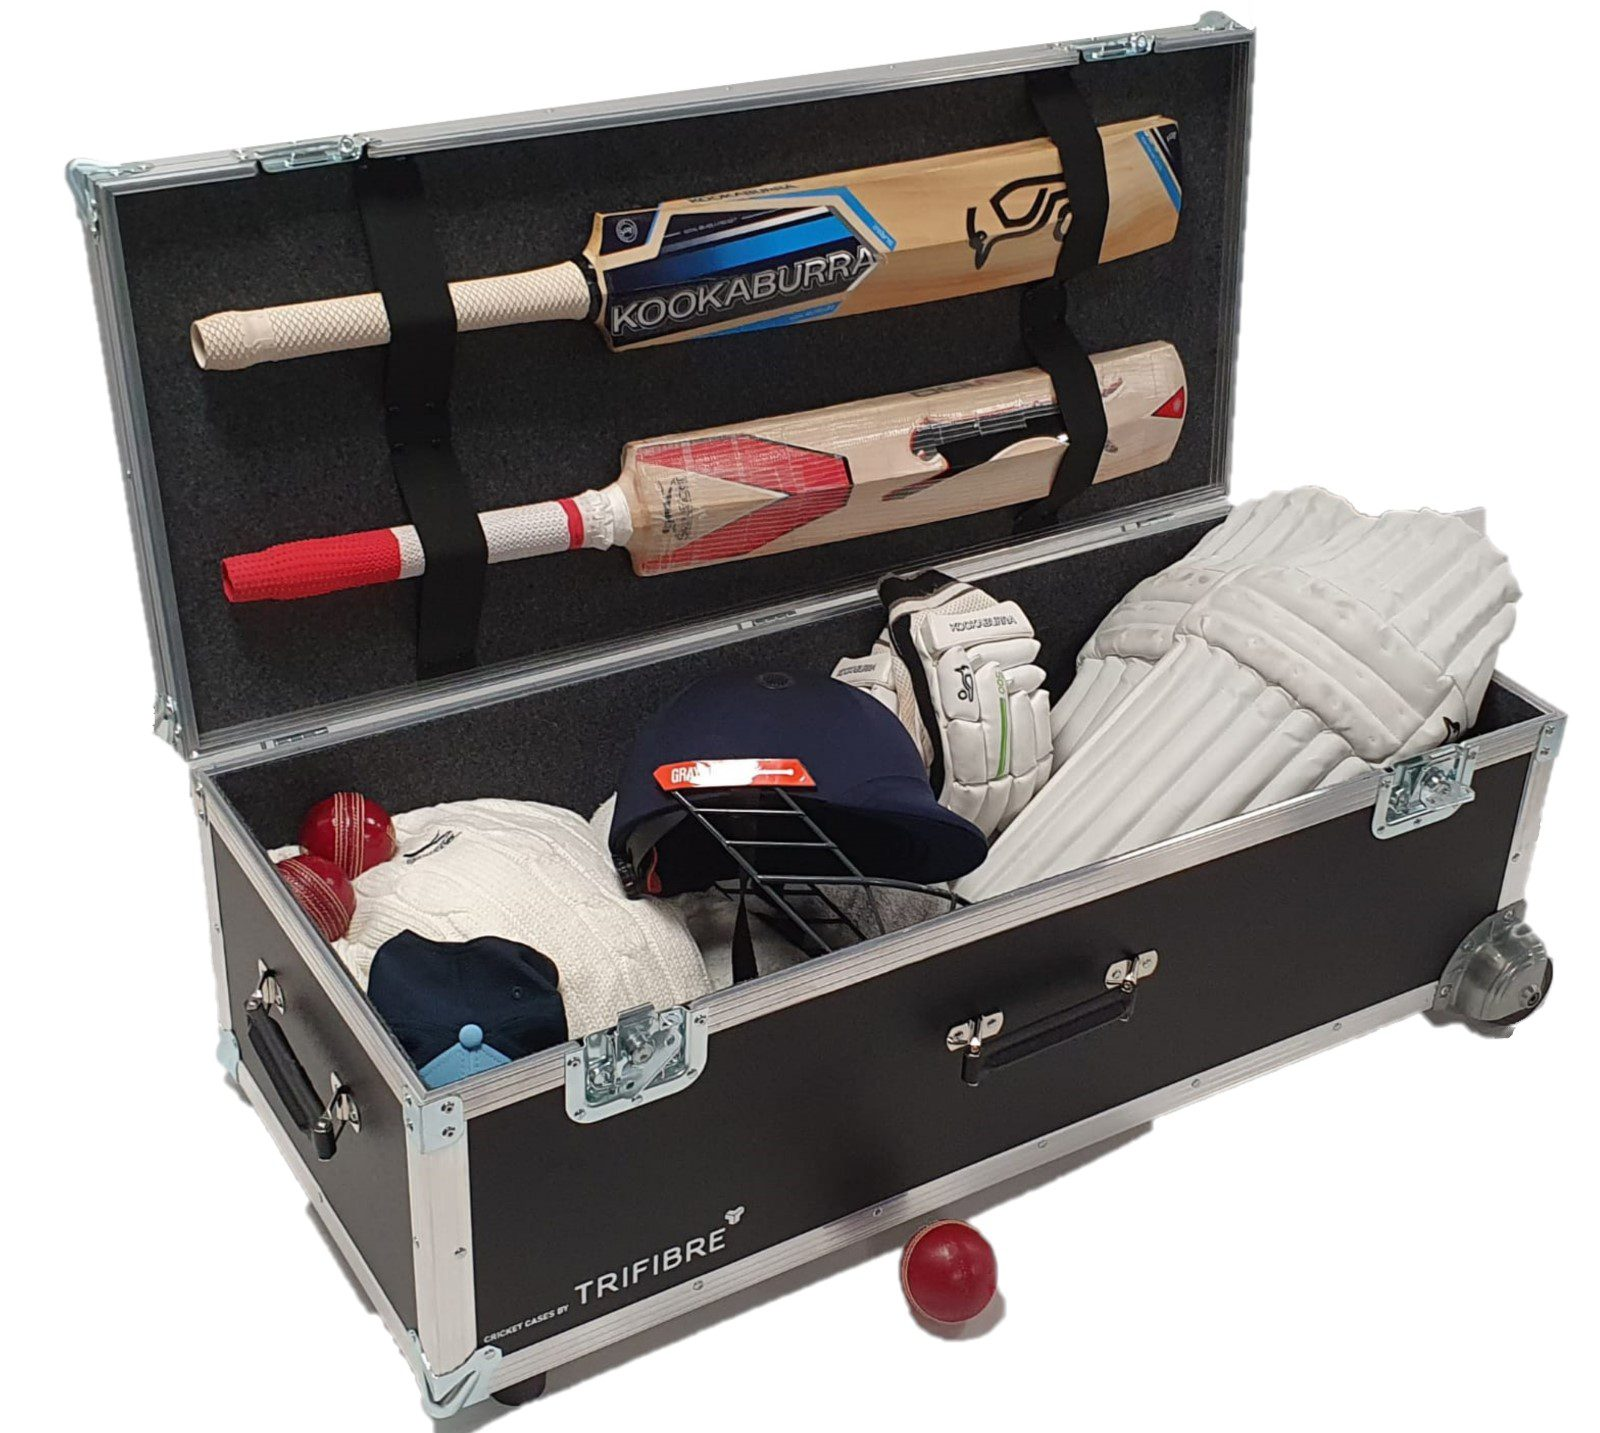 Touring Cricket Coffin